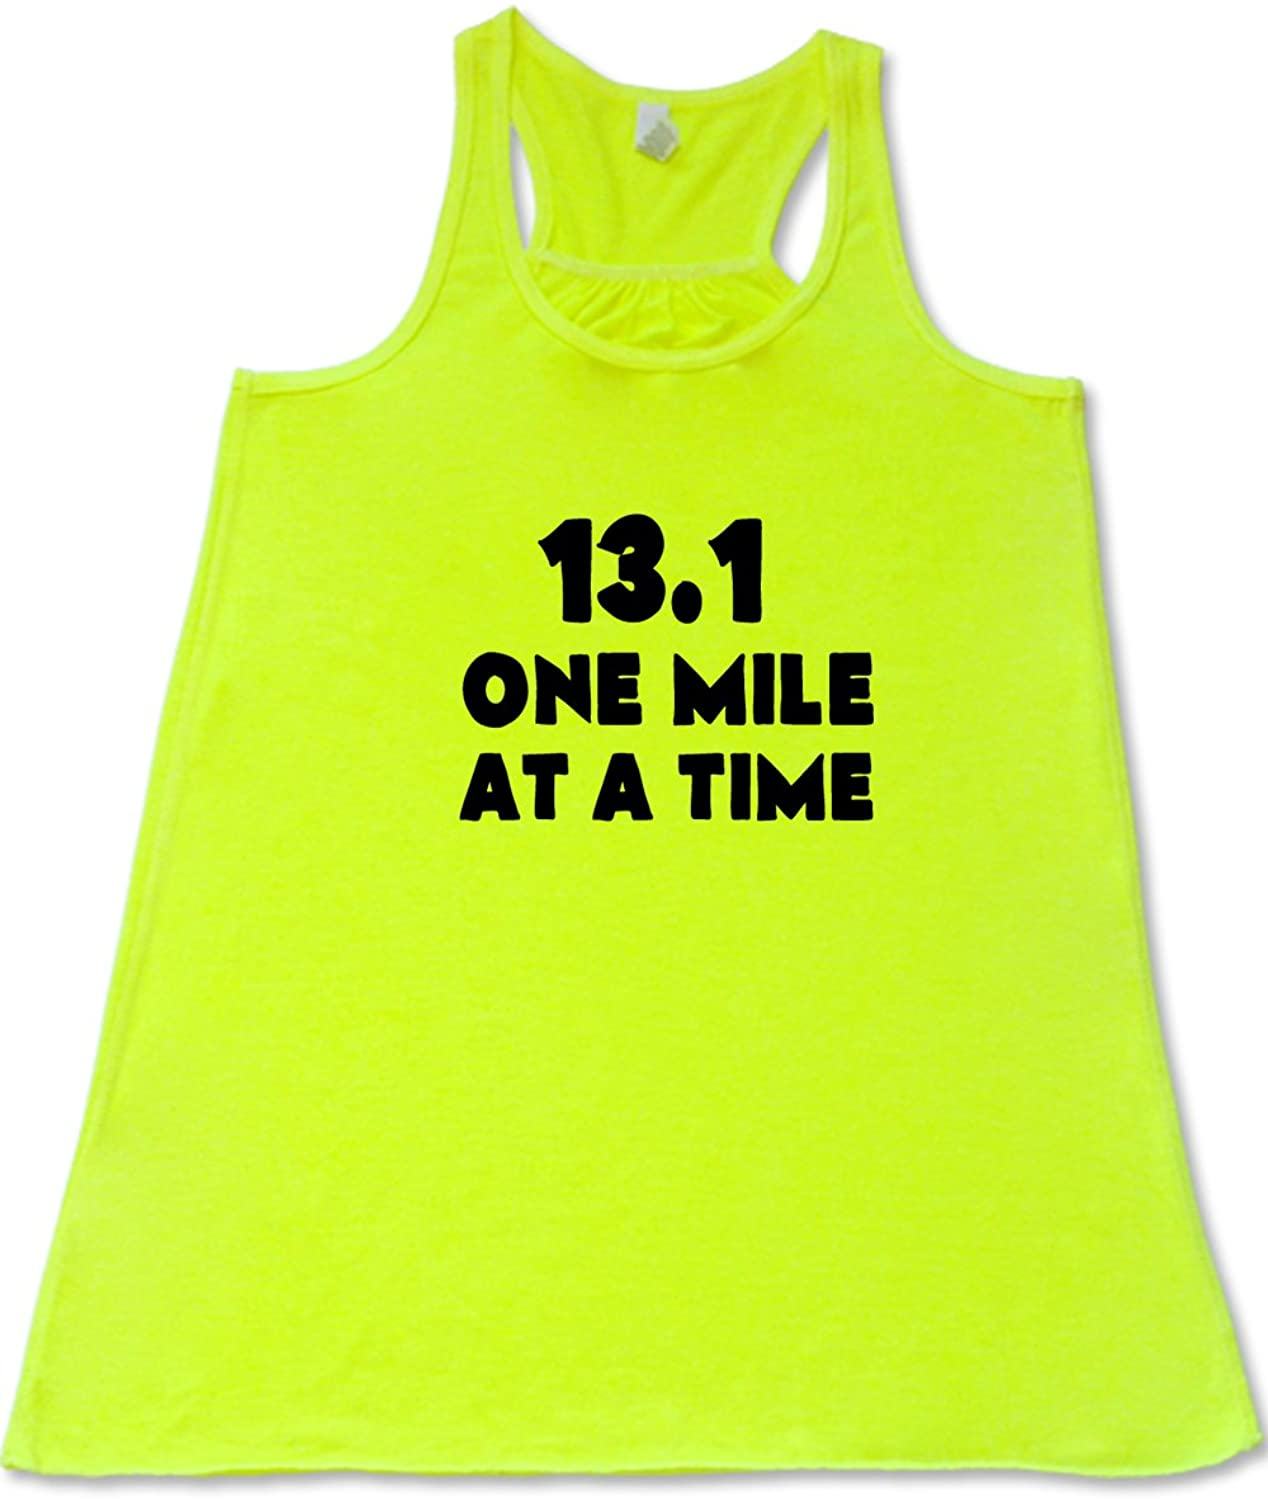 Women's 13.1 One Mile At A Time Tank Top - Workout Shirt